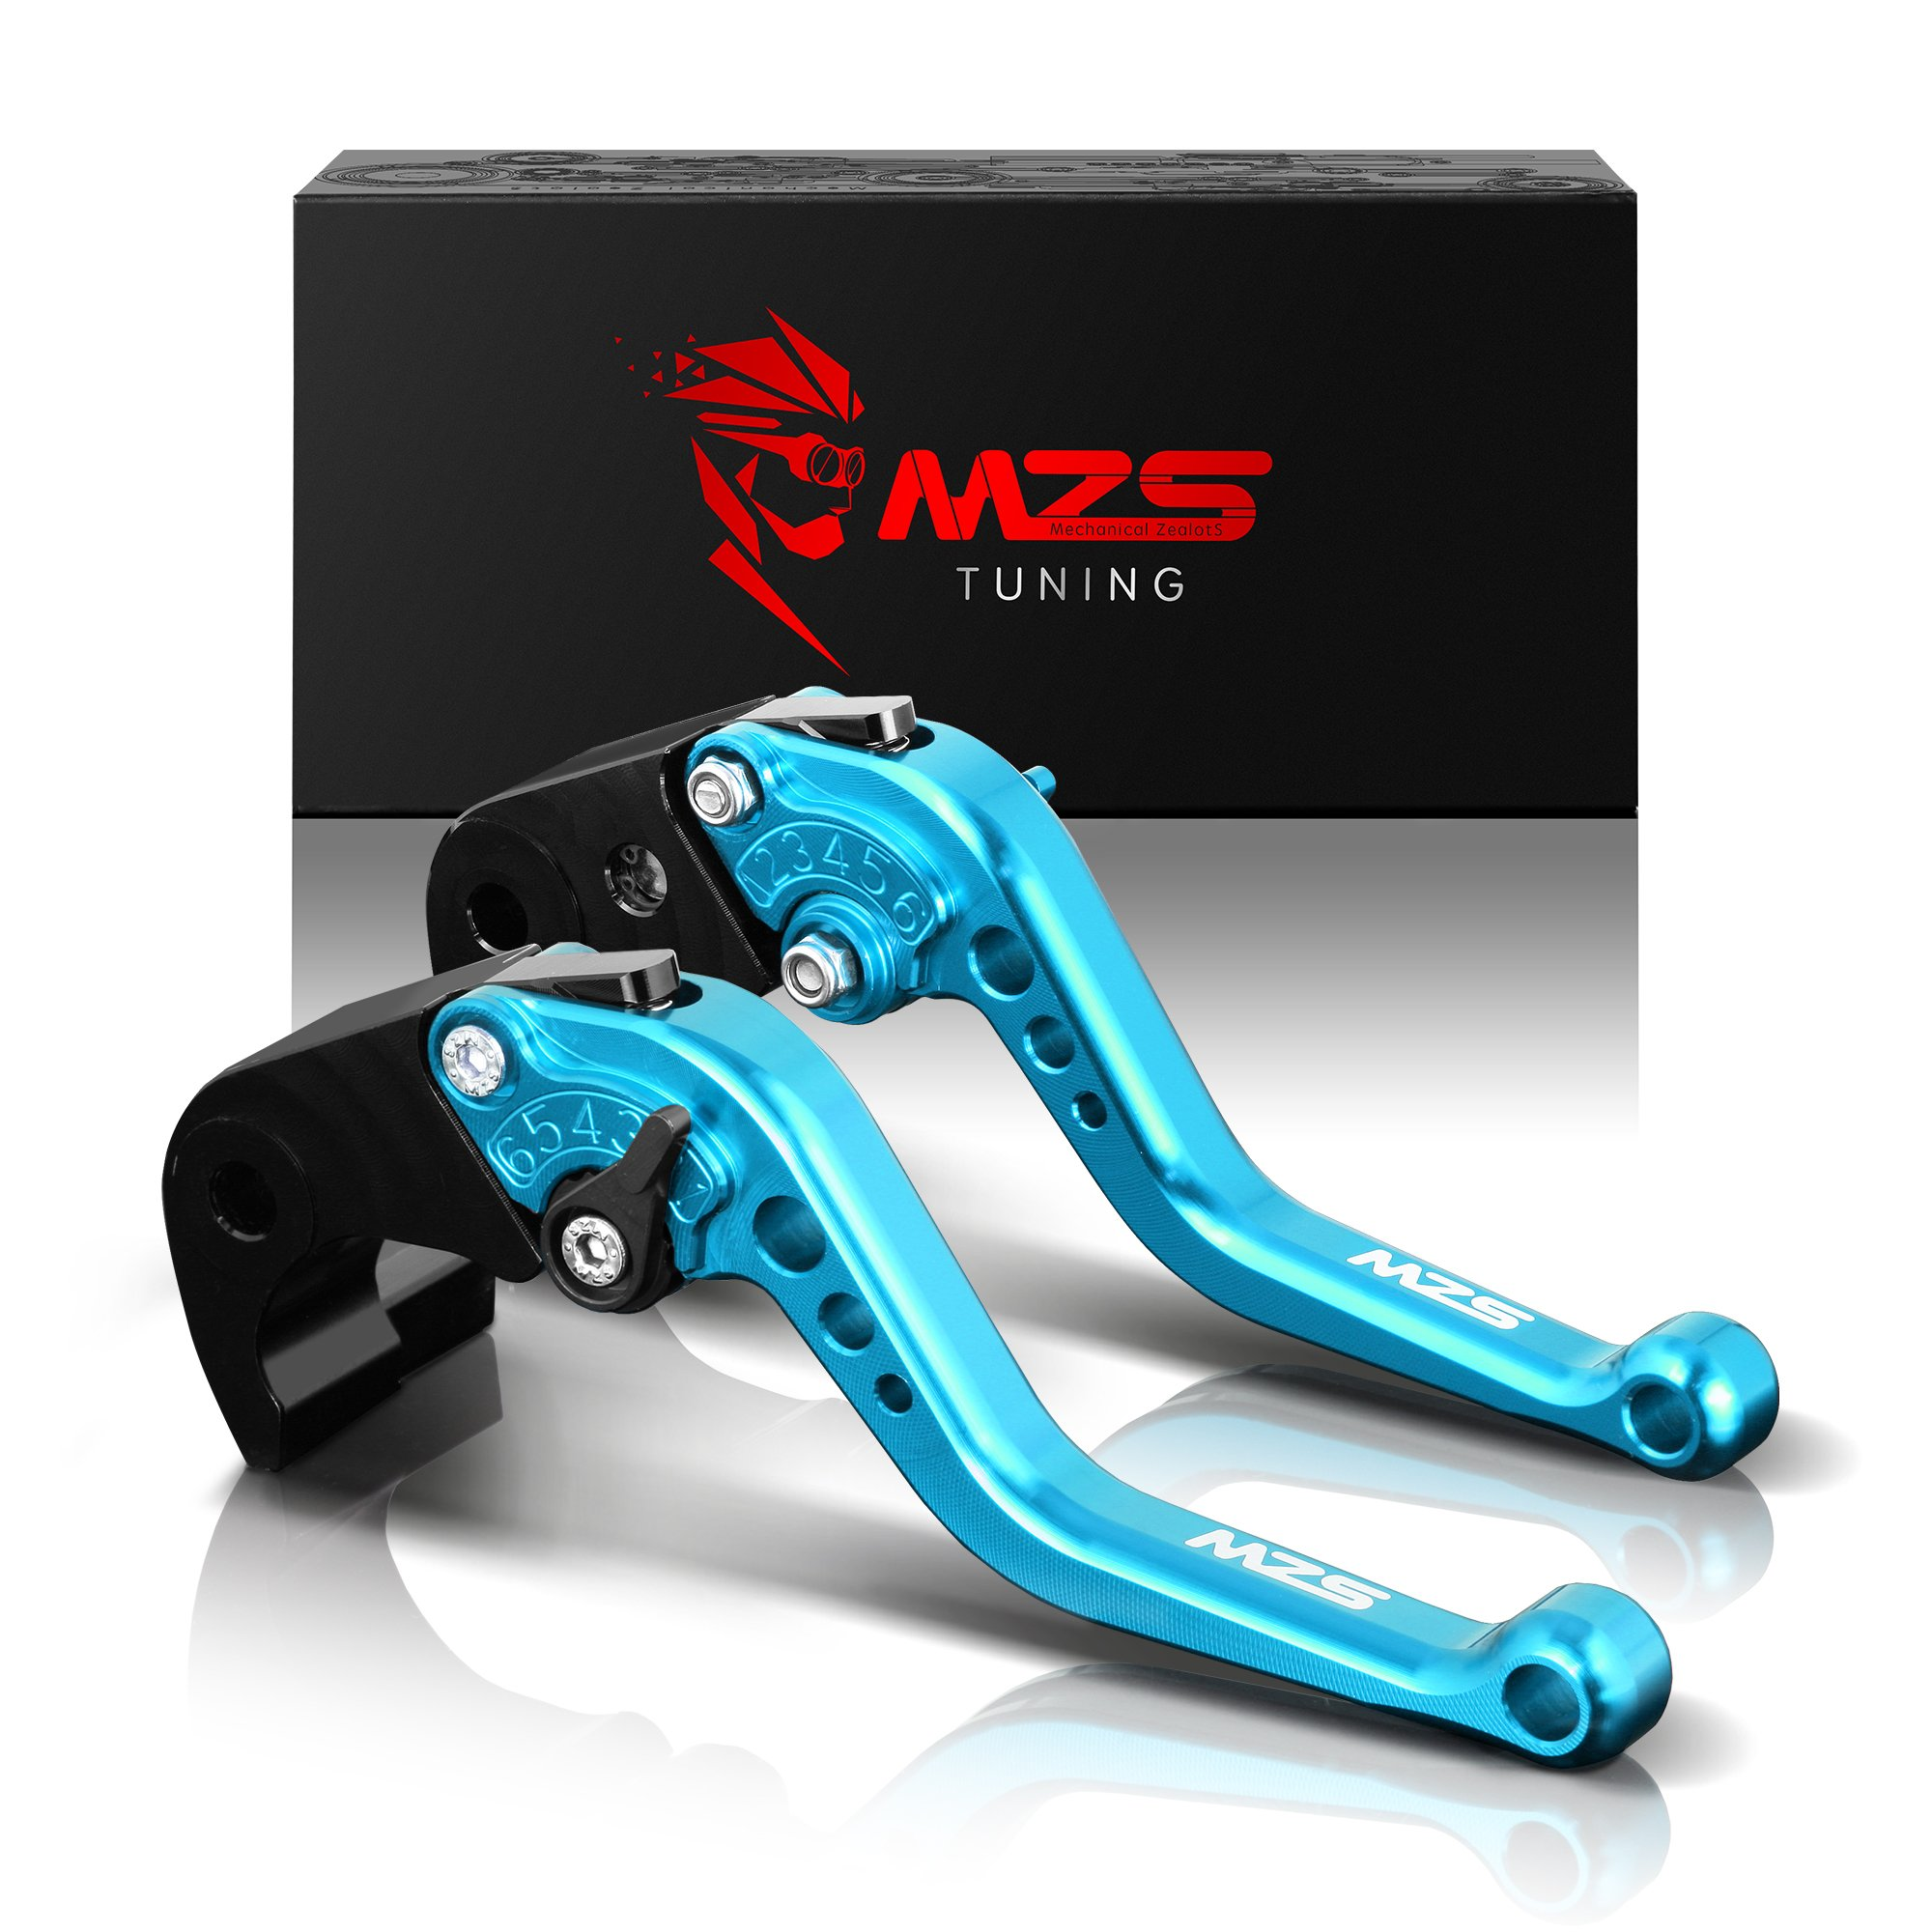 MZS Short Brake Clutch Levers for Yamaha YZF R3 2013-2018/ YZF R25 2013-2018/ MT-03 2015-2018/ MT-25 2015-2018 Blue by MZS